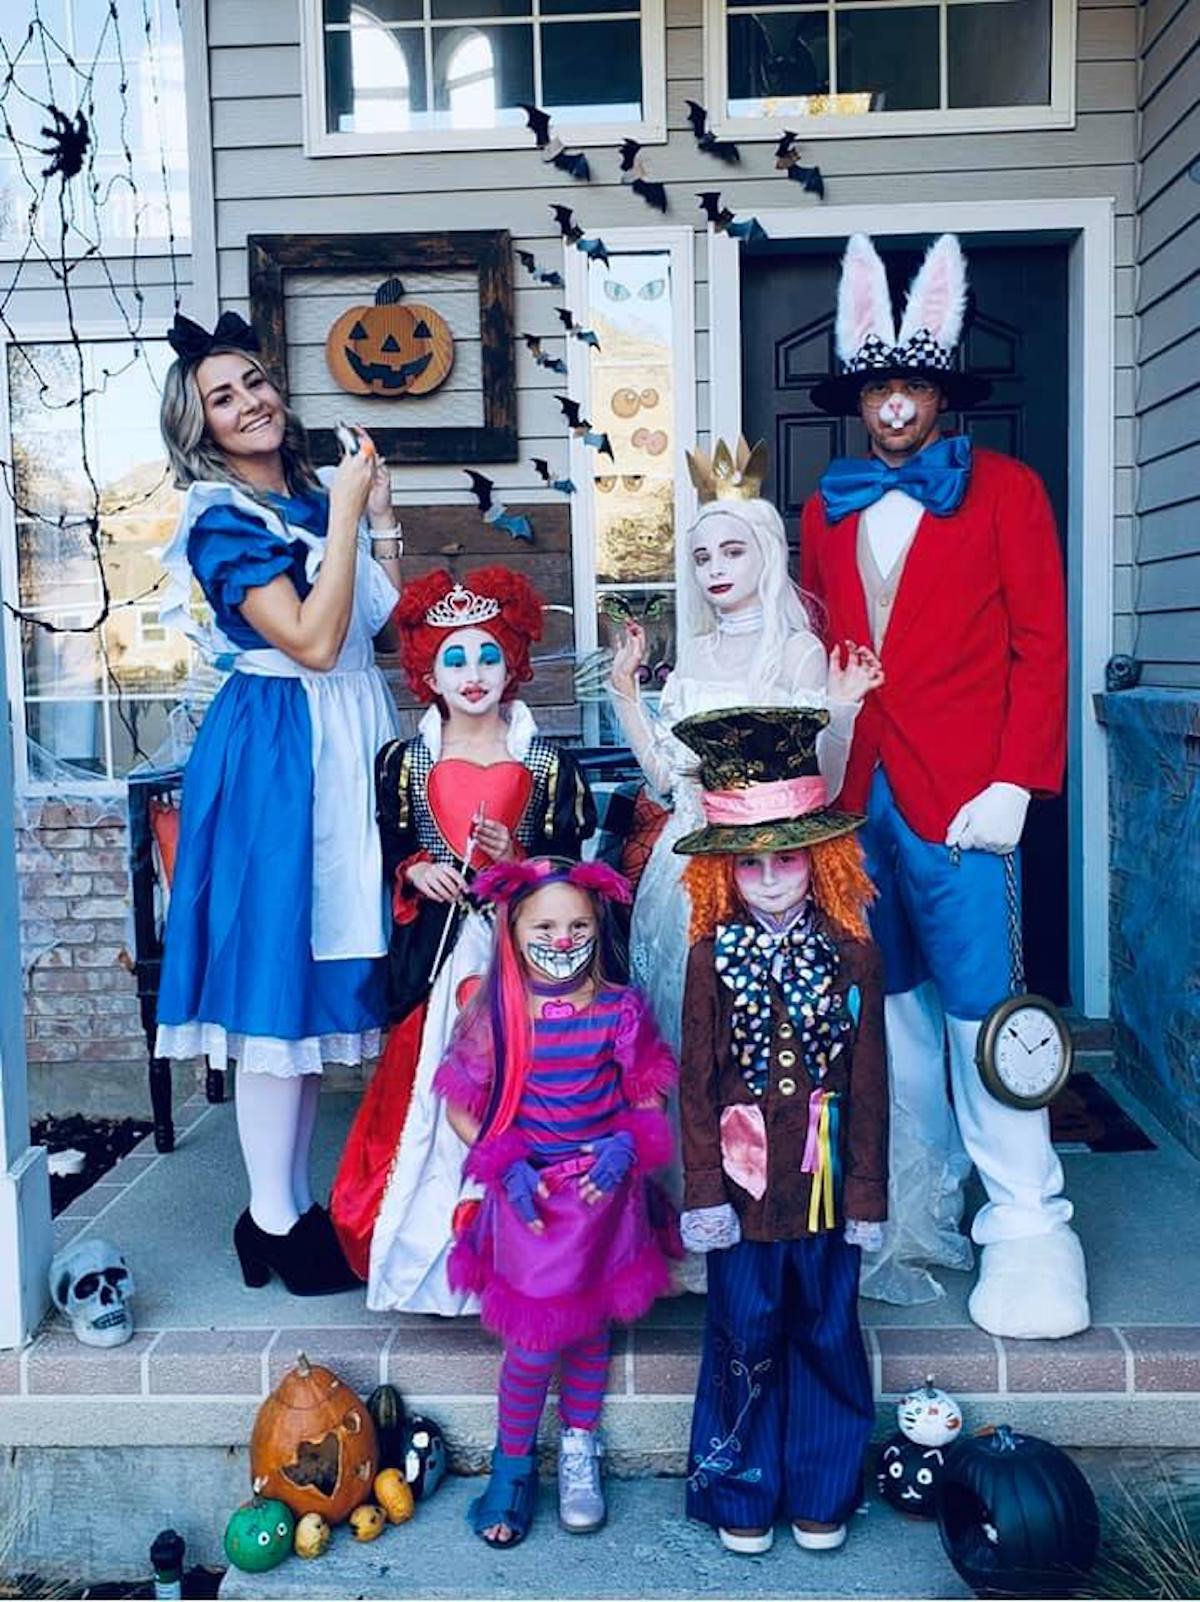 Family wearing Alice in Wonderland costumes stands on front porch and smiles.